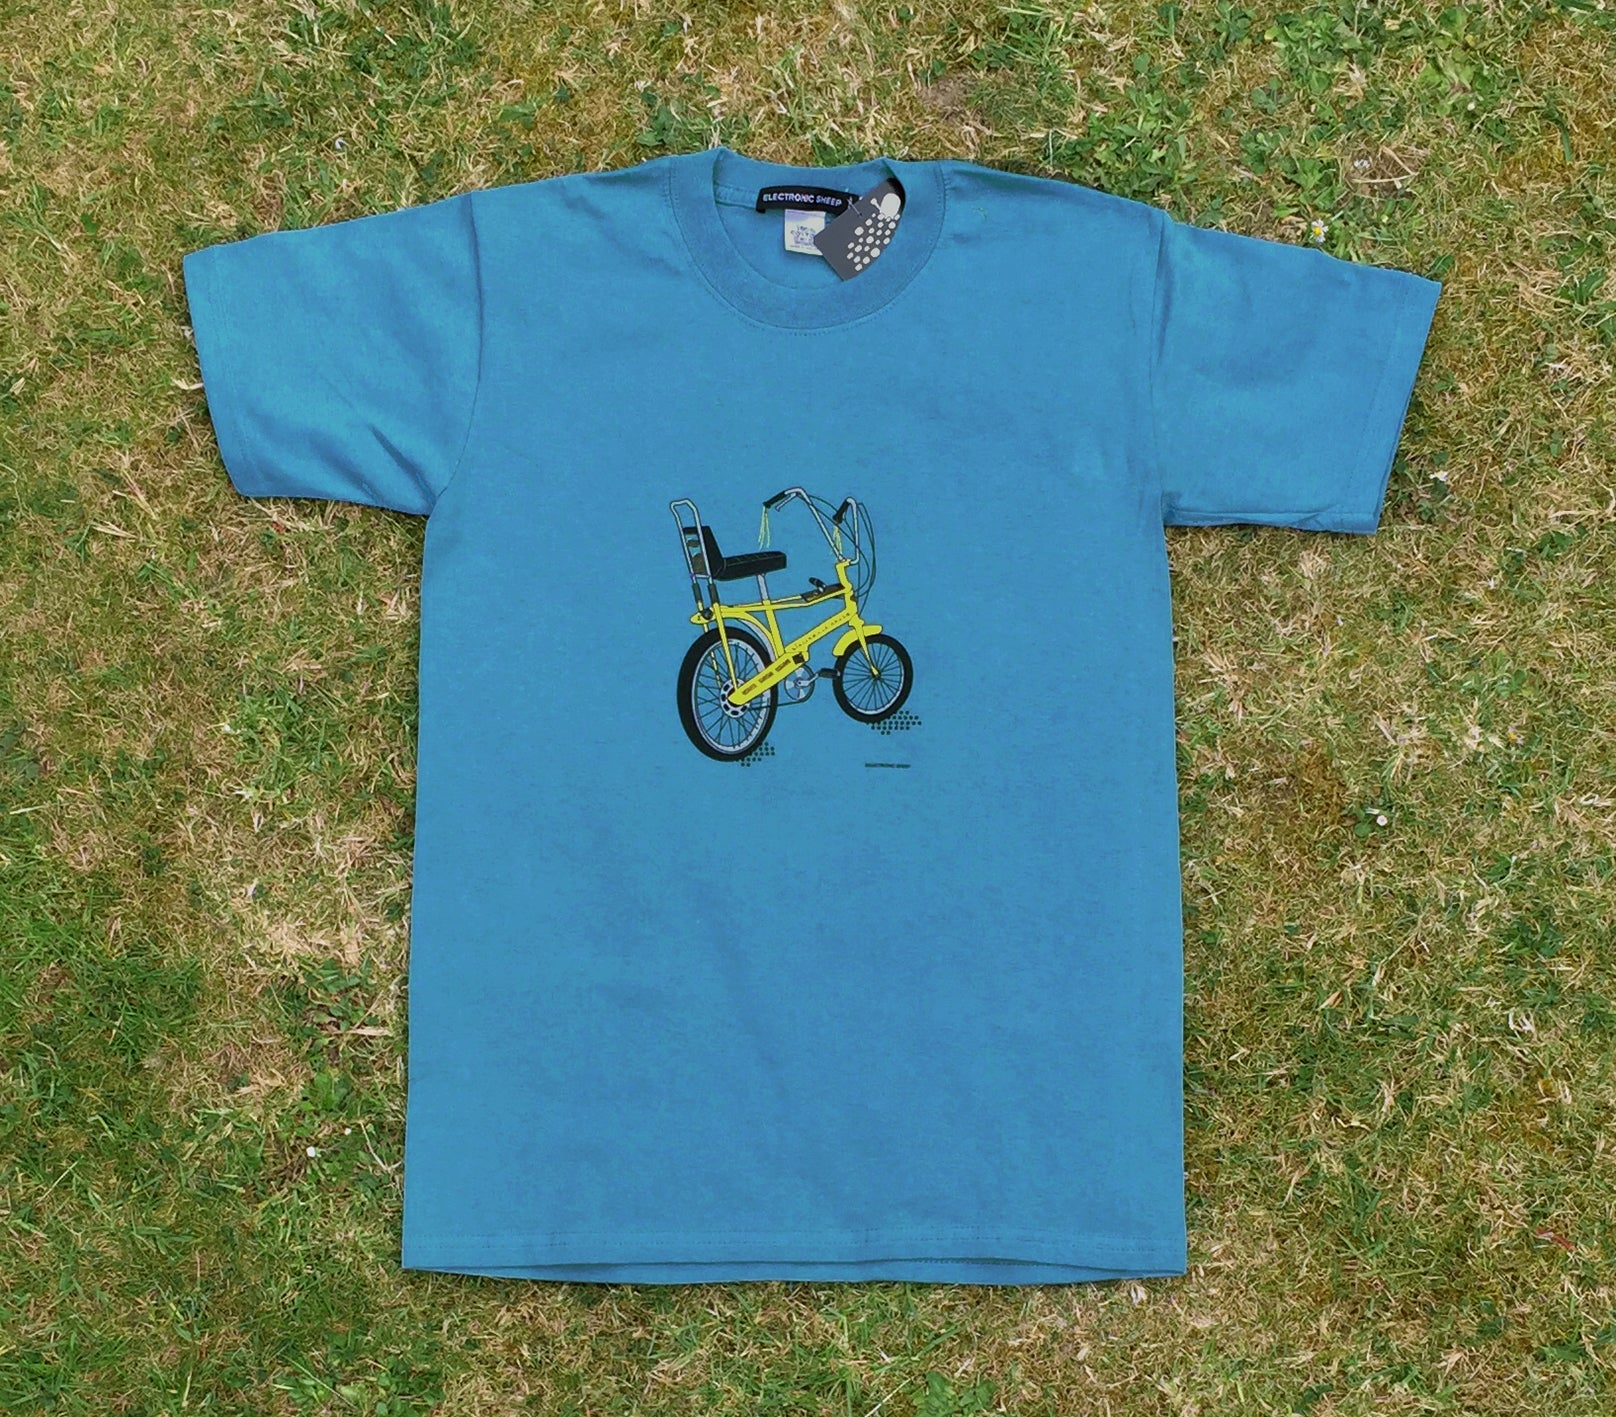 Chopper T-shirt